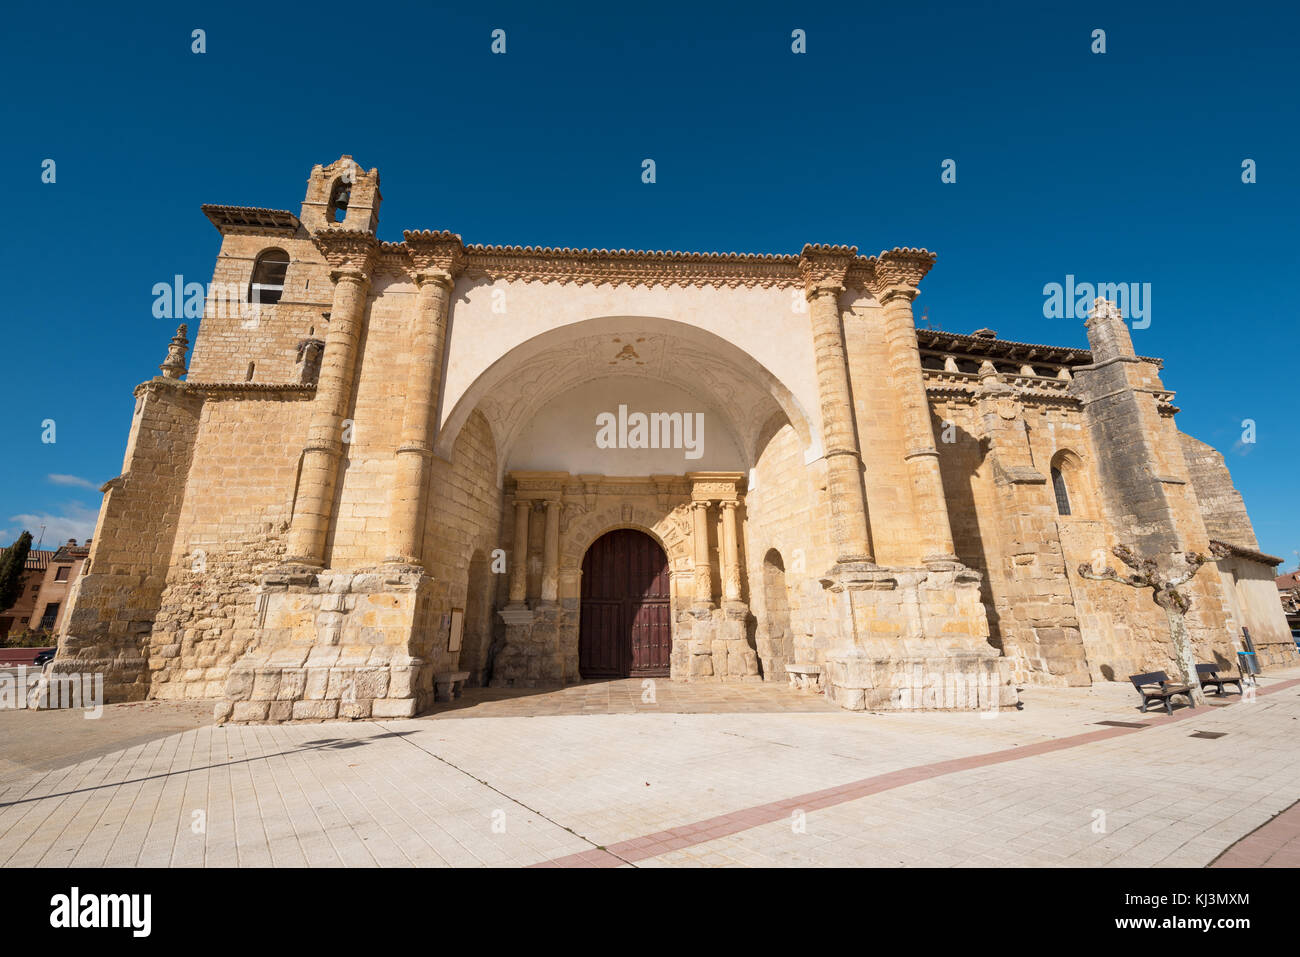 San Pedro church in Fromista, Palencia, Castilla y León, Spain. - Stock Image